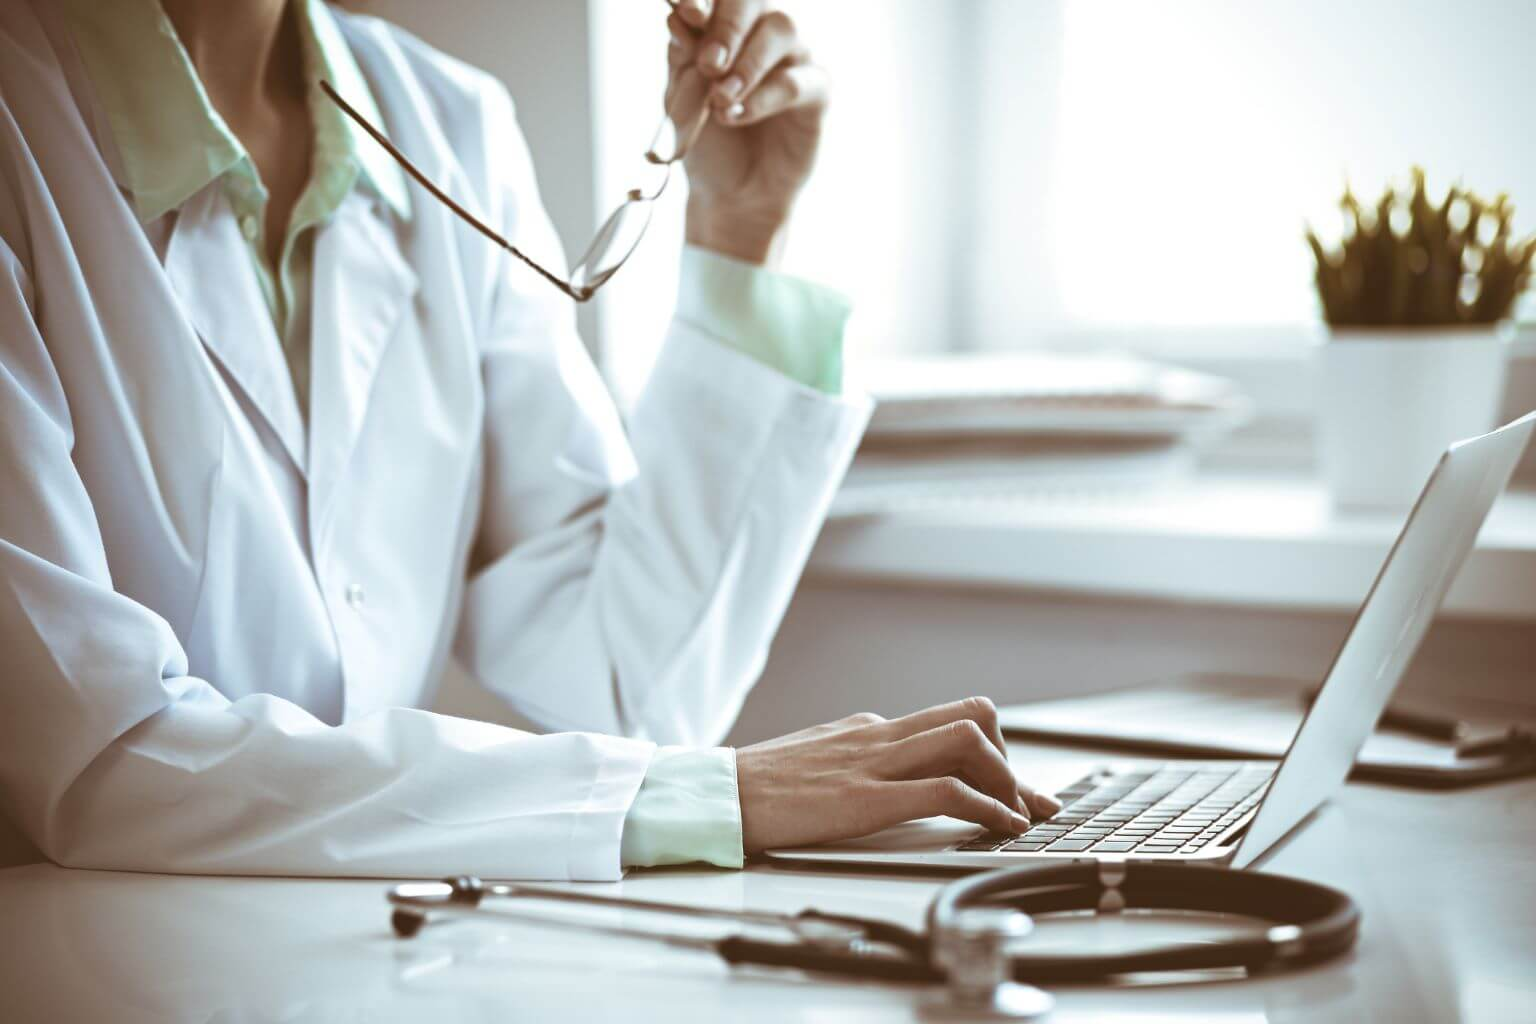 medical-professional-typing-on-computer